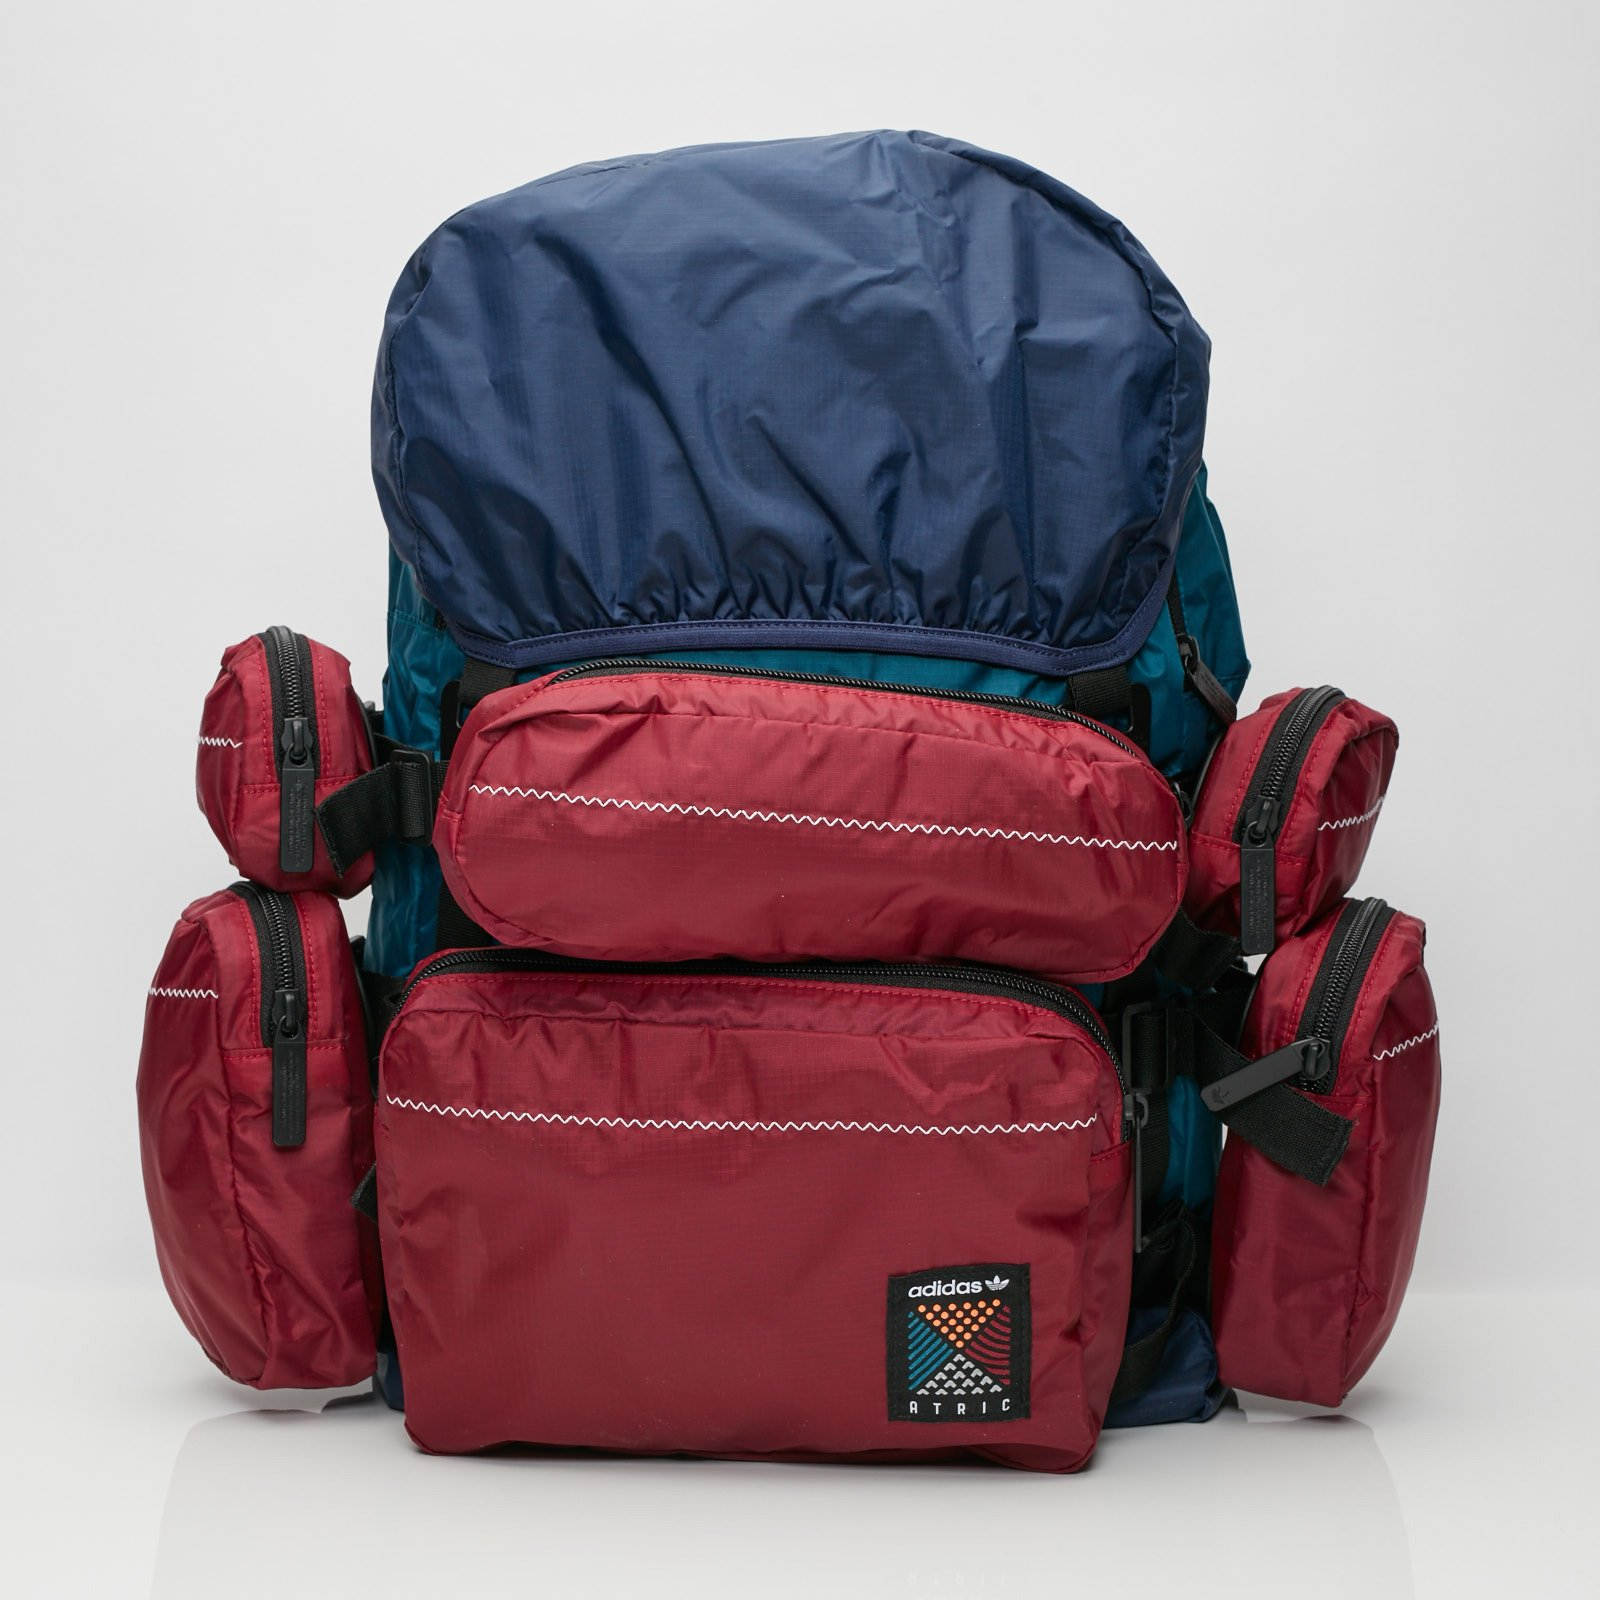 a4a77c1d31f adidas Backpack - Ce2372 - Sneakersnstuff